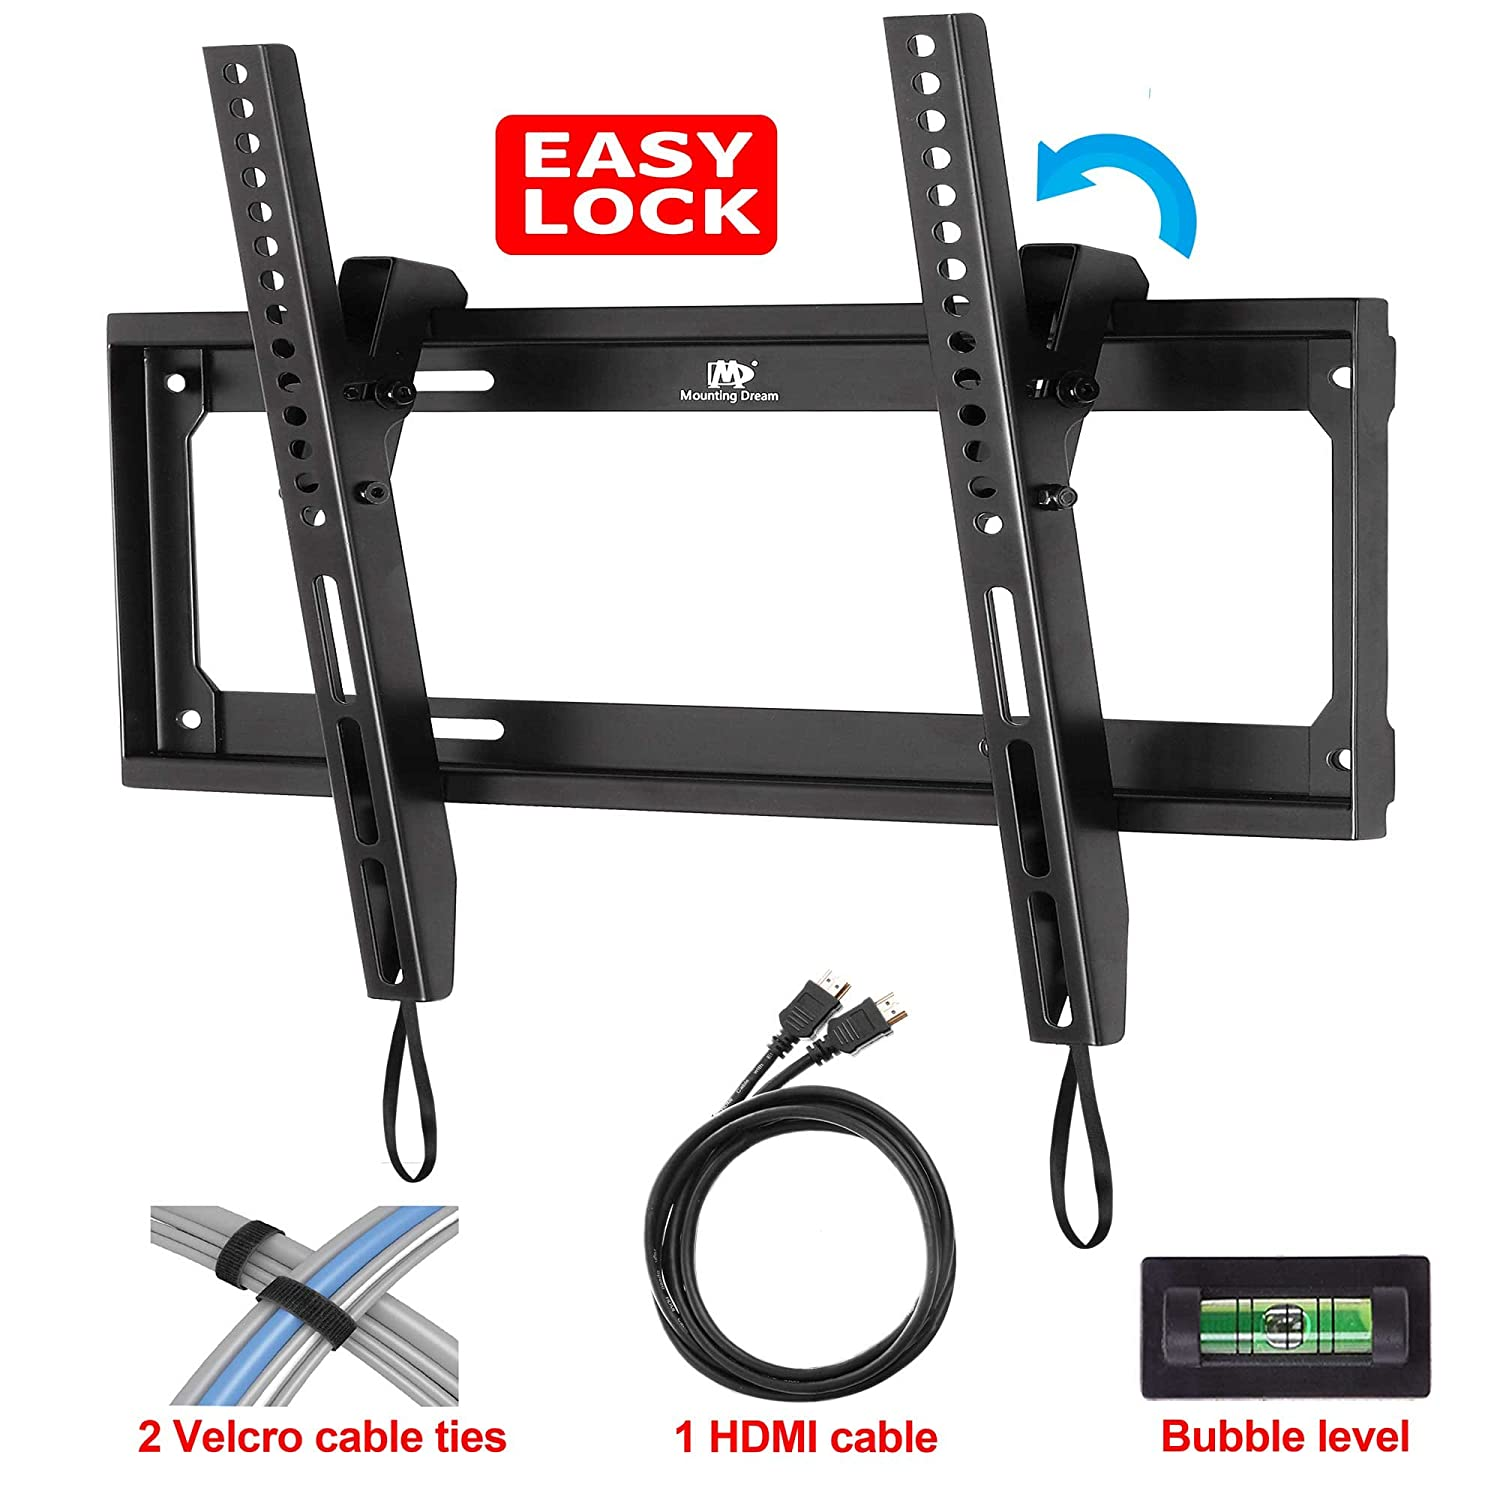 Mounting Dream® MD2268-MK Tilt TV Wall Mount Bracket for most of 26-55 Inches TVs with VESA from 75X75 to 400x400mm, Loading Capacity 100 lbs, 0-10 Degree Forward Tilt, Including 6 ft HDMI Cable and Magnetic Bubble Level